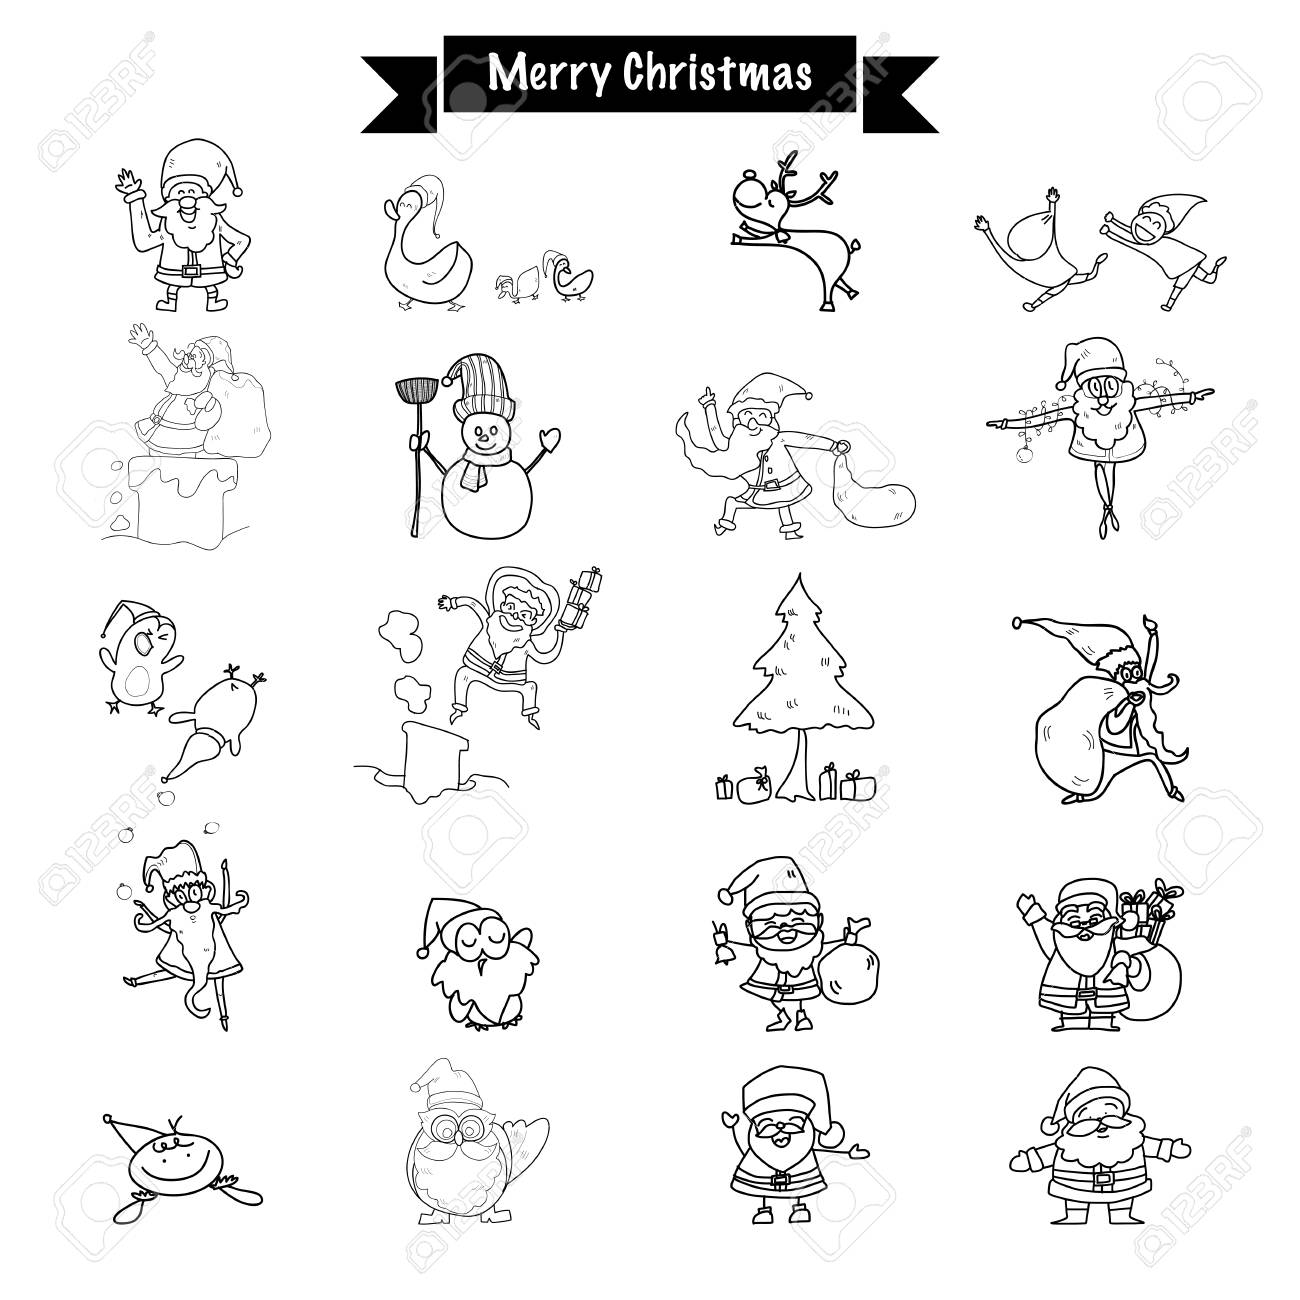 Hand Drawing Merry Christmas Funny Drawing Santa Claus And All